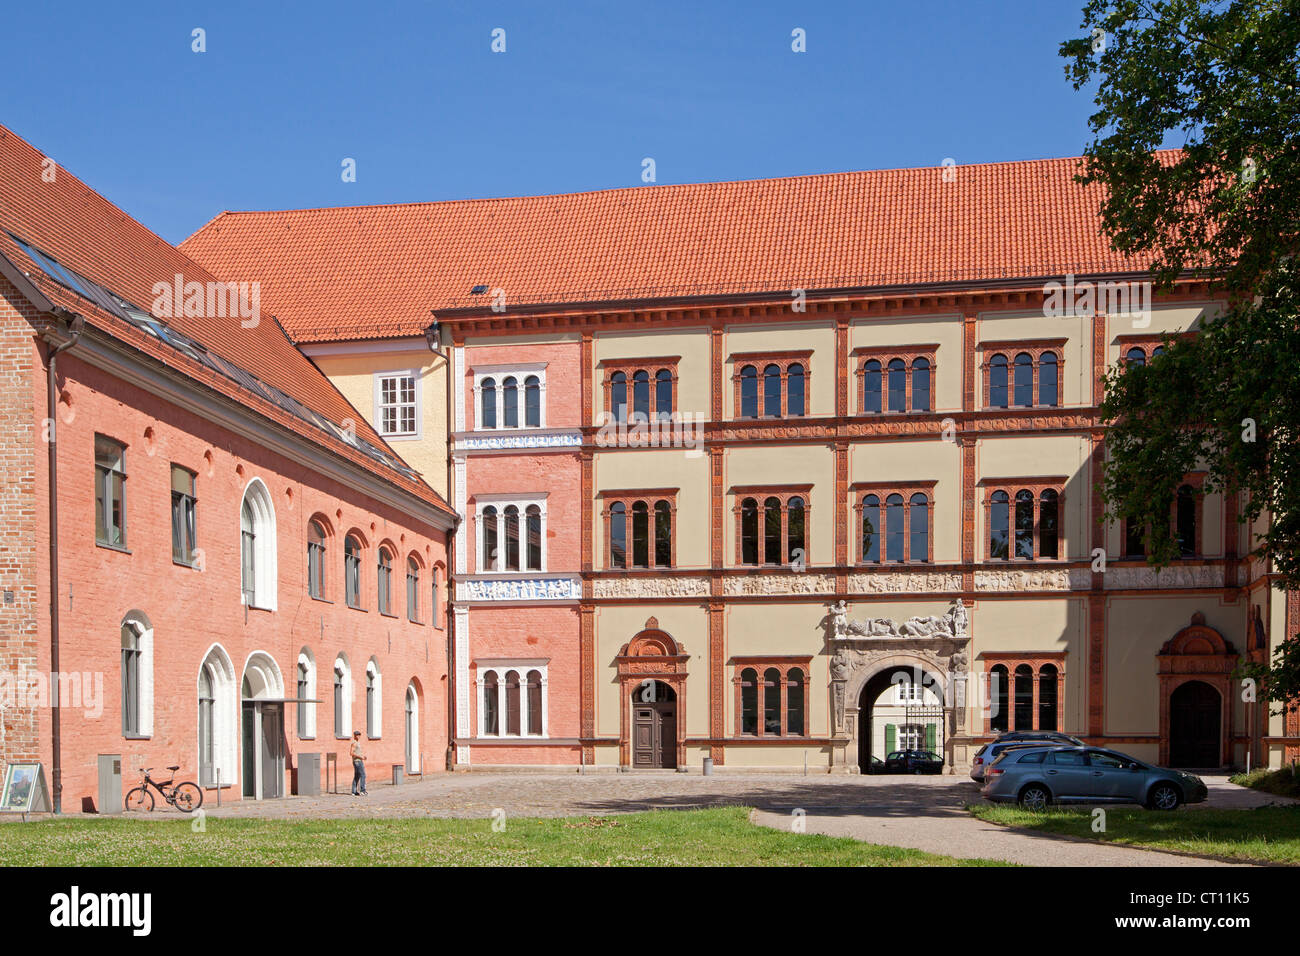 Fuerstenhof, Wismar, Mecklenburg-West Pomerania, Germany - Stock Image